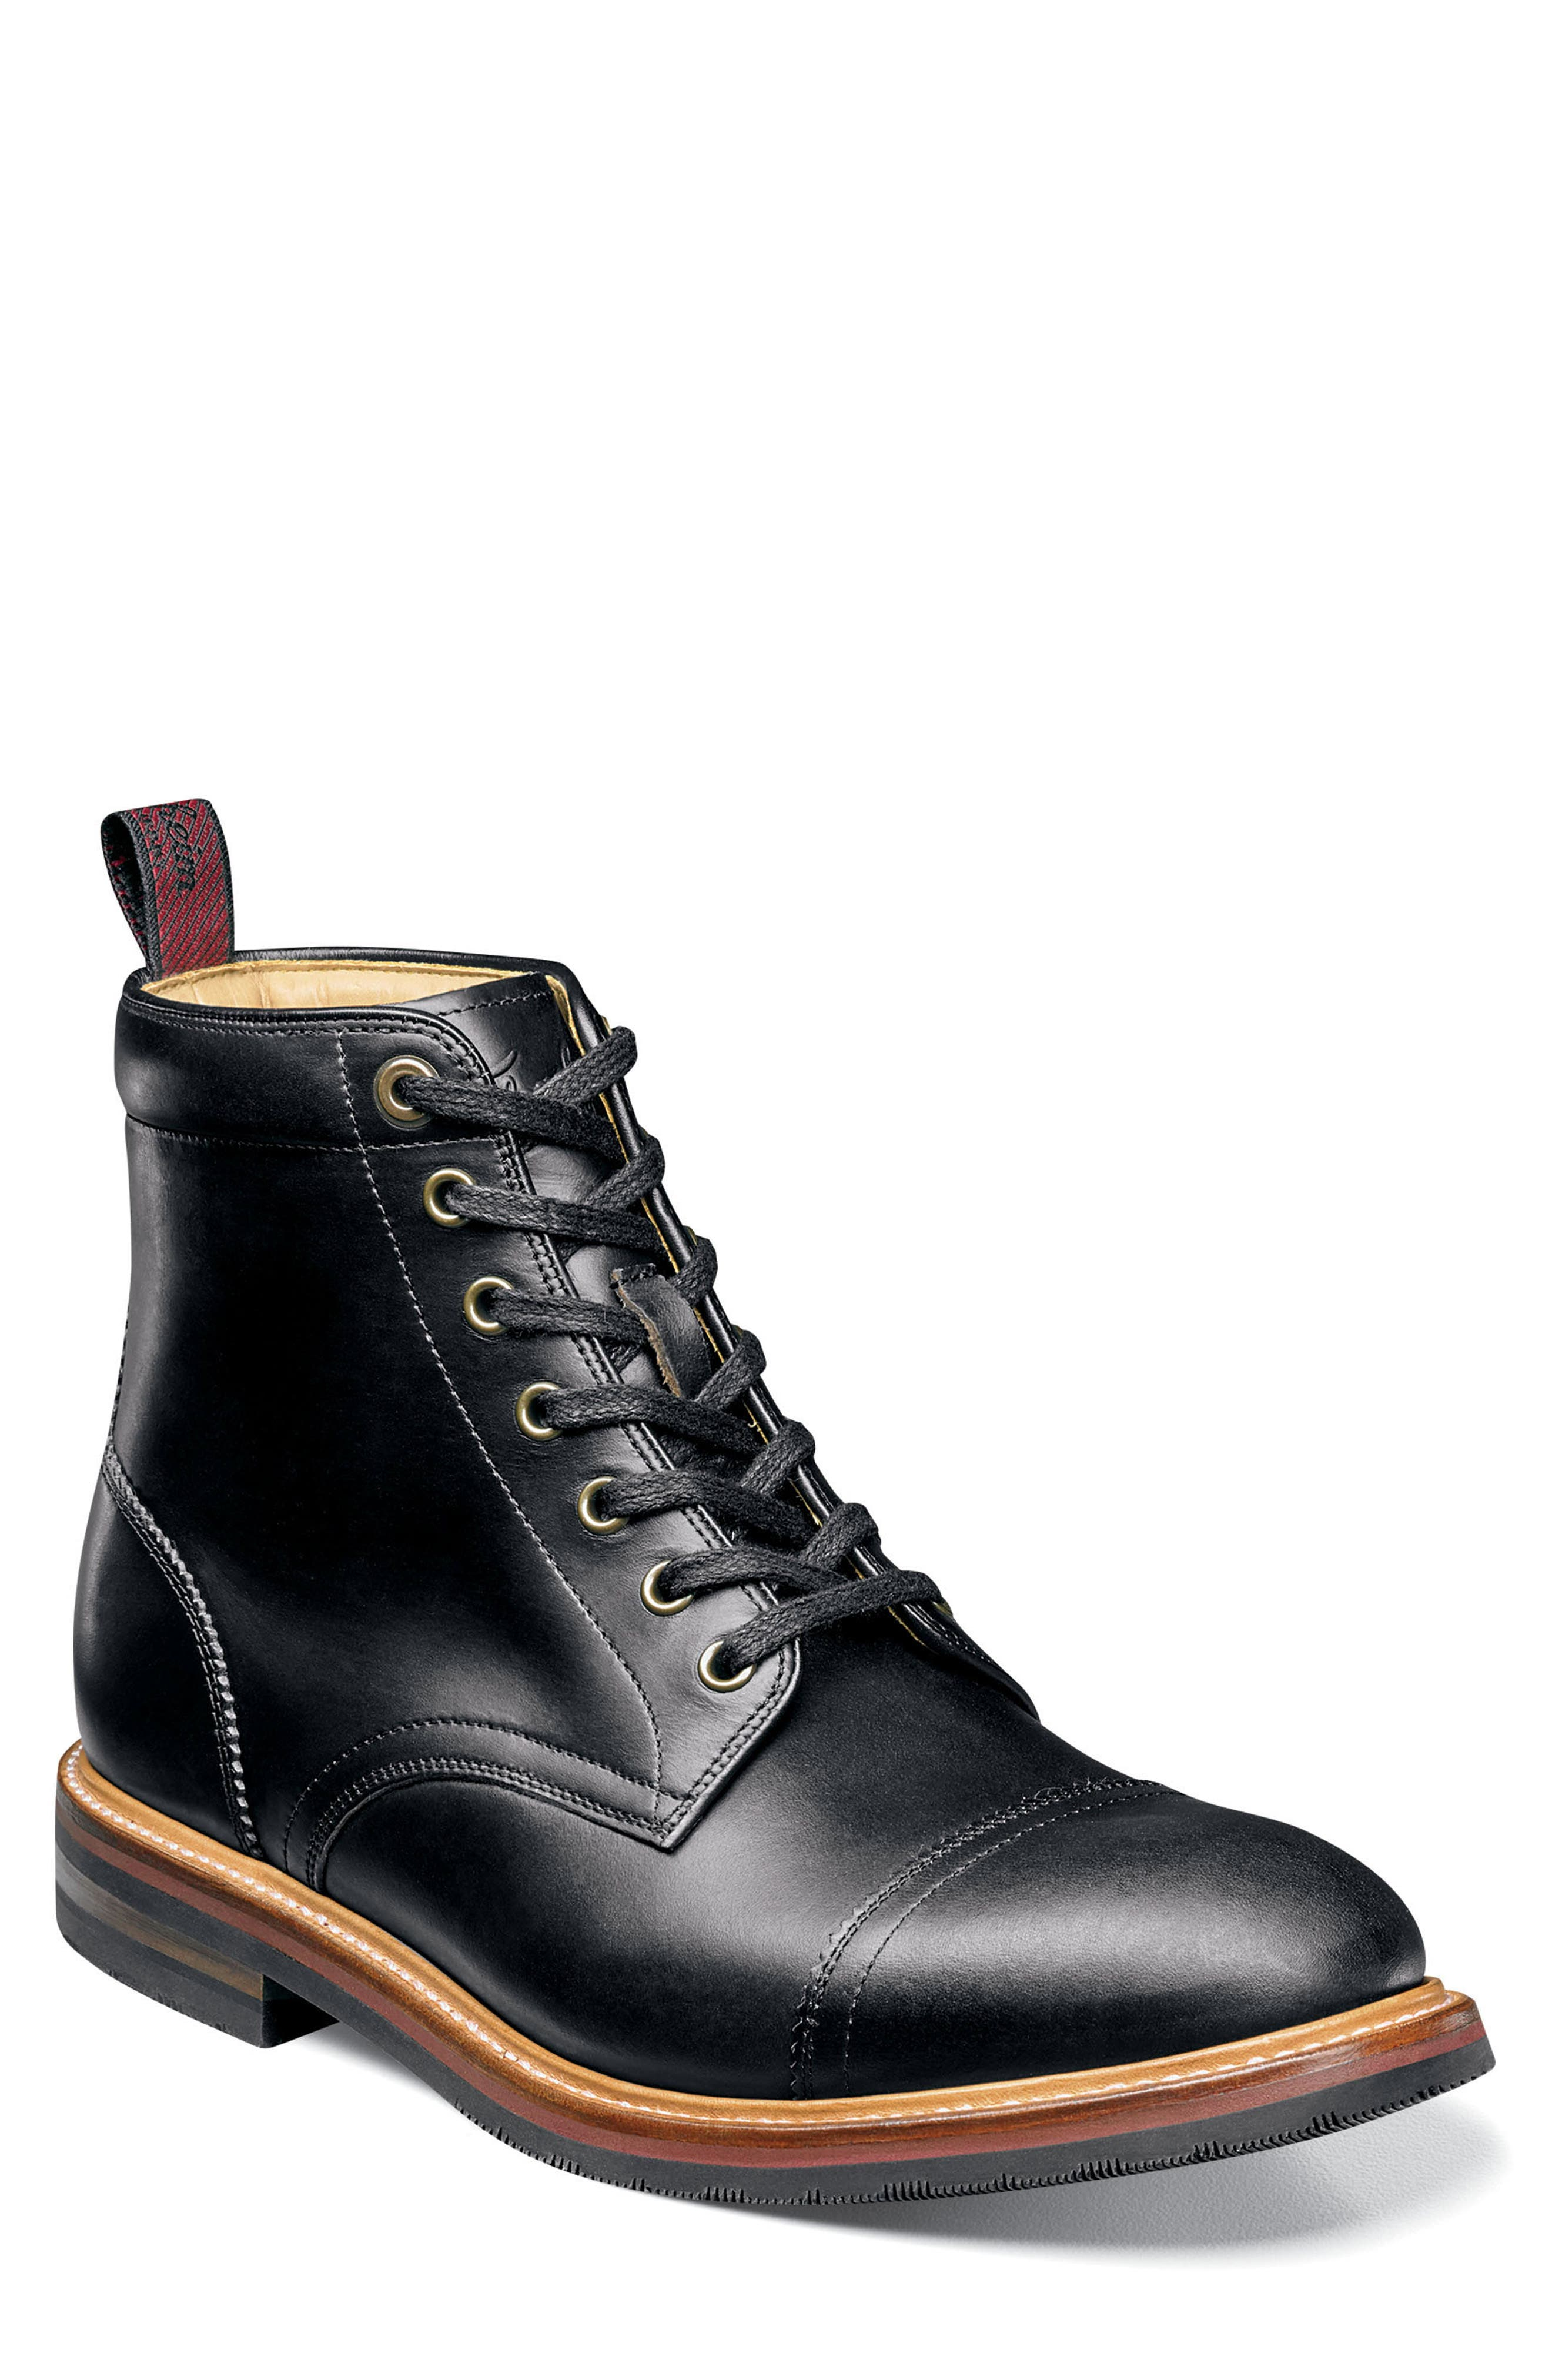 Founcry Cap Toe Boot,                             Main thumbnail 1, color,                             BLACK LEATHER